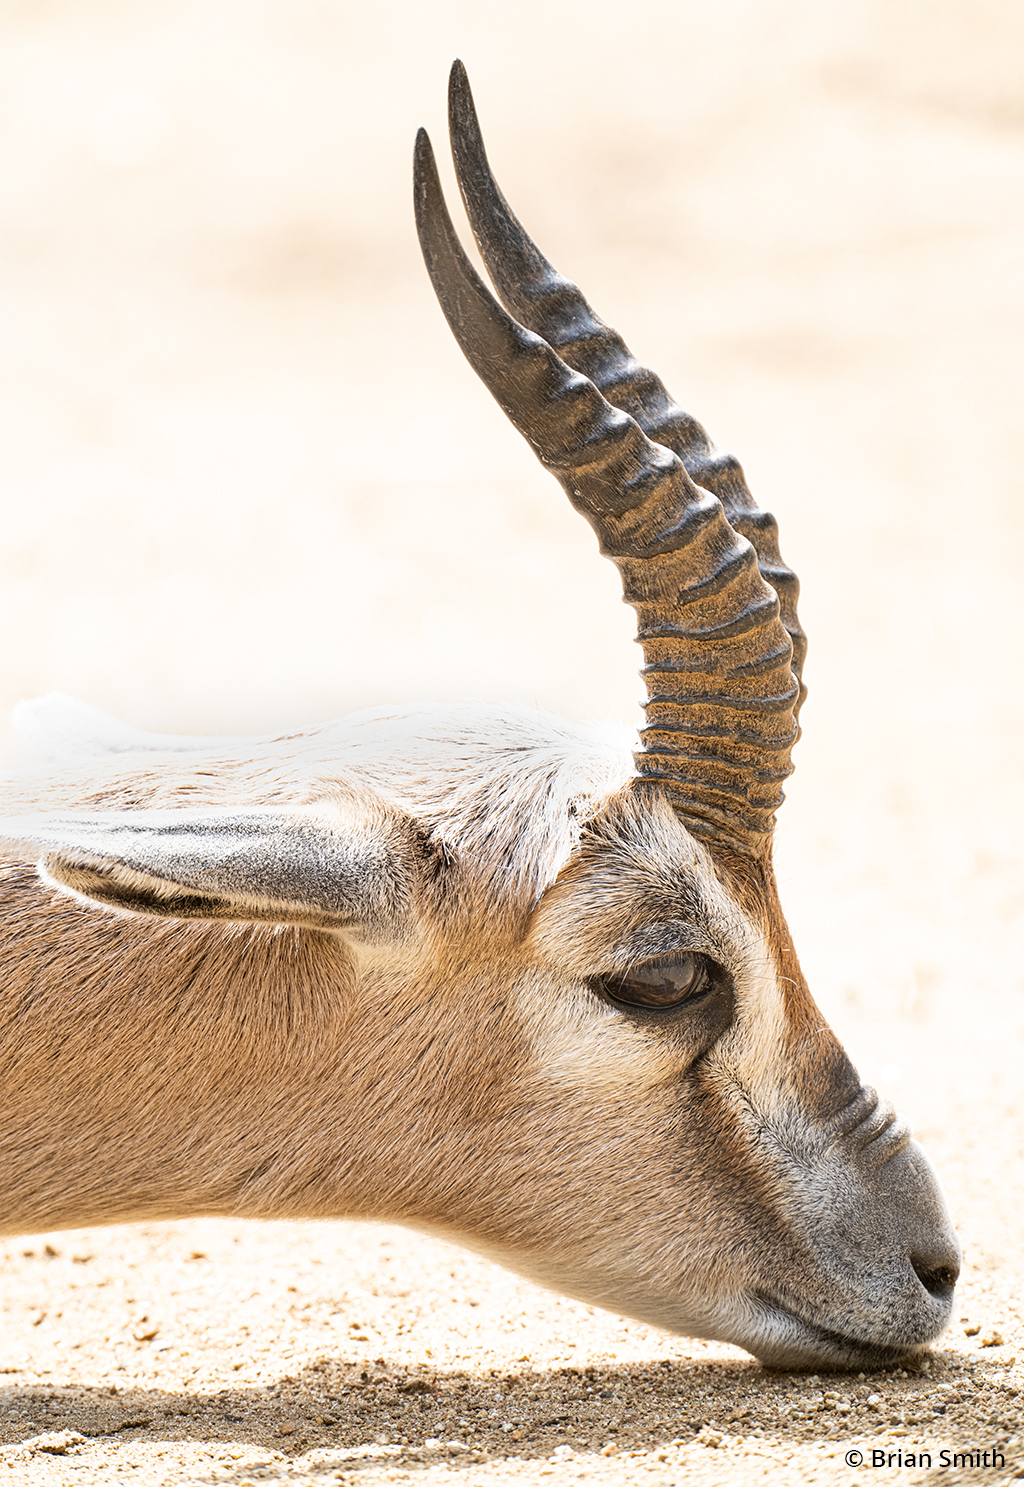 Image of a Speke's gazelle at the Los Angeles Zoo.